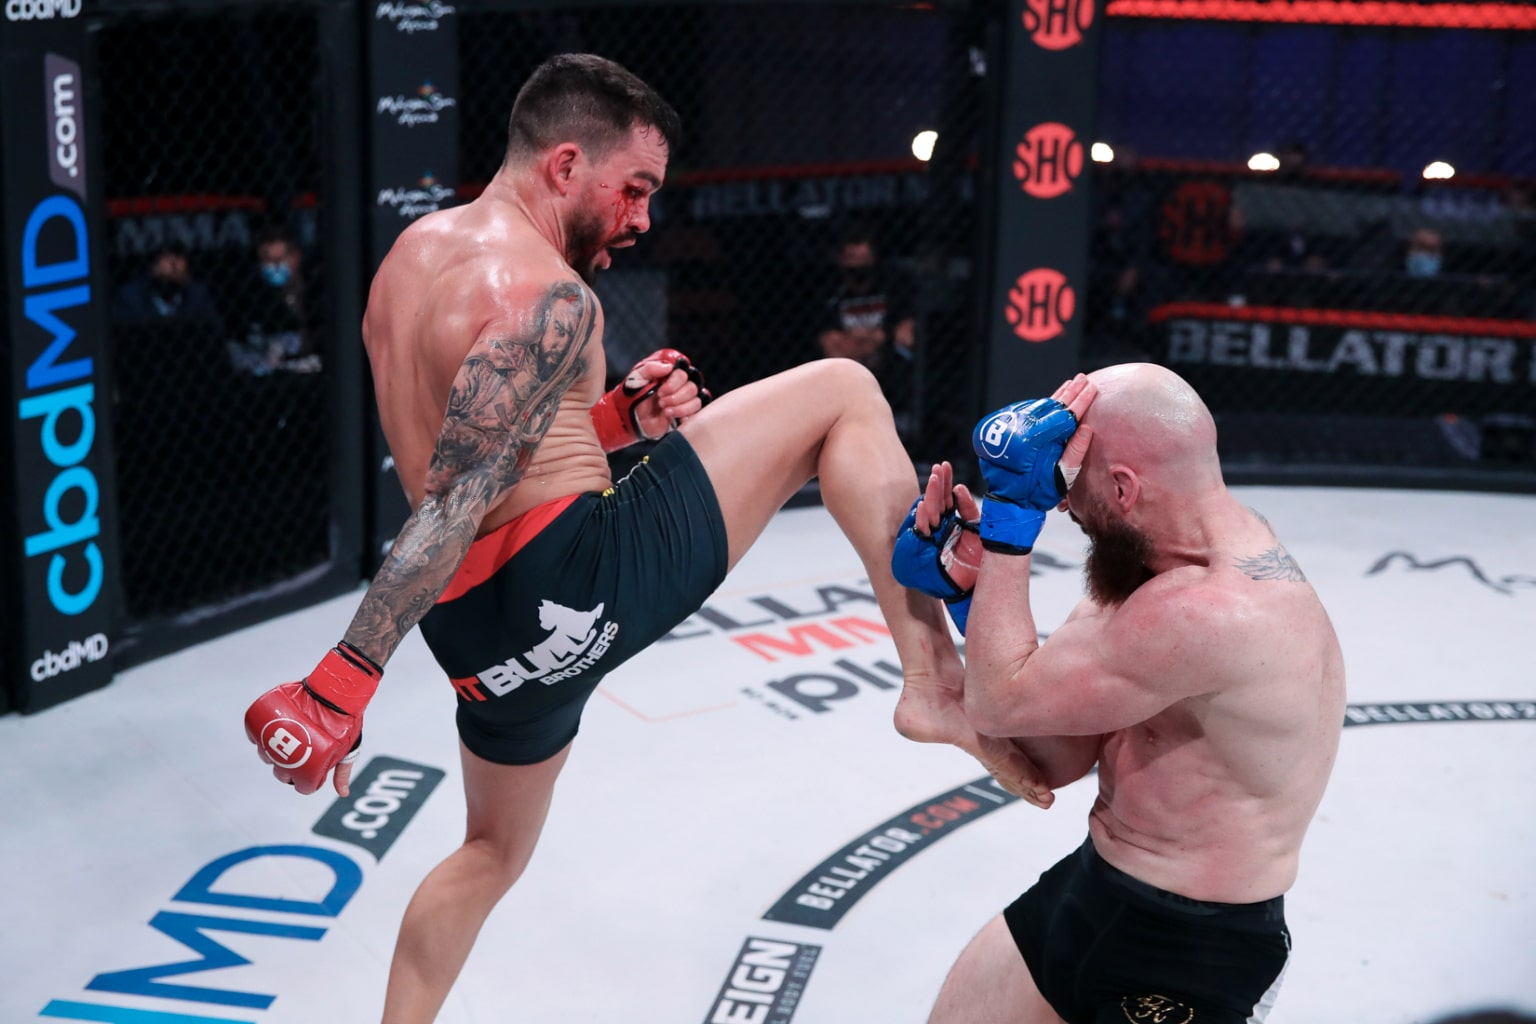 Bellator 258 Betting Upsets: Peter Queally upsets Patricky Pitbull in Bloodbath